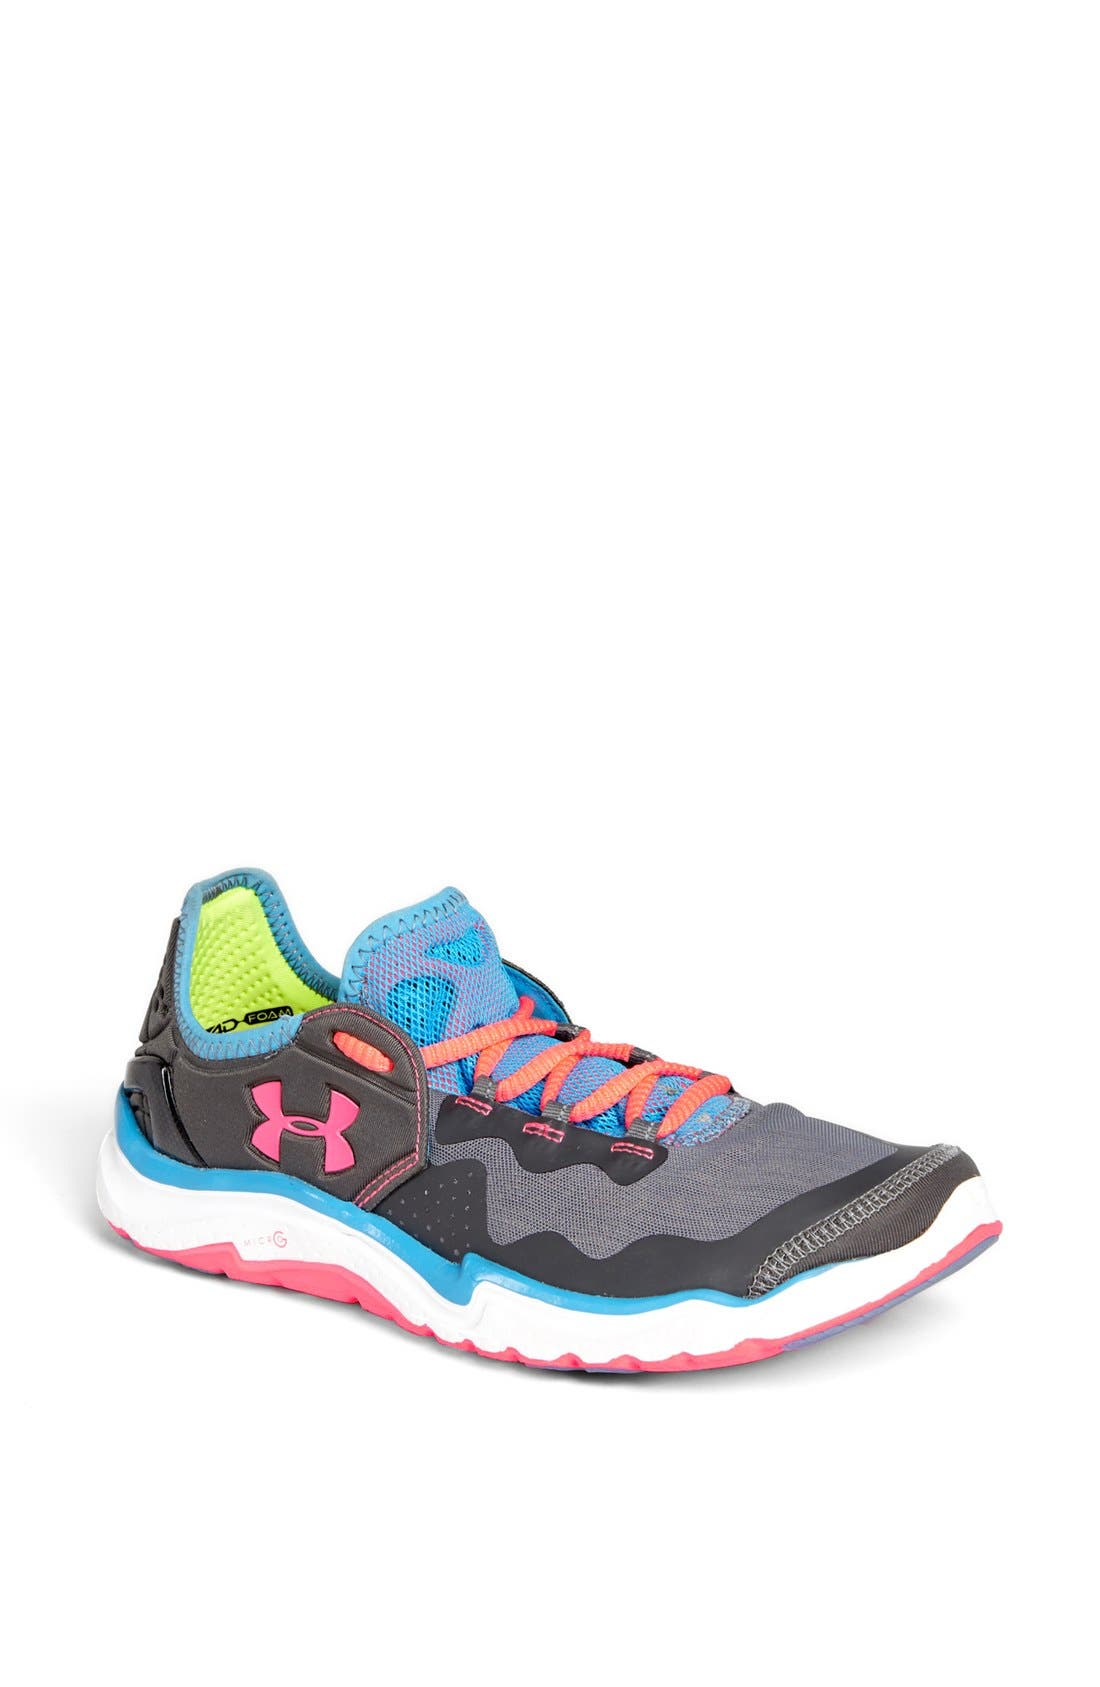 Main Image - Under Armour 'Charge RC 2' Running Shoe (Women)